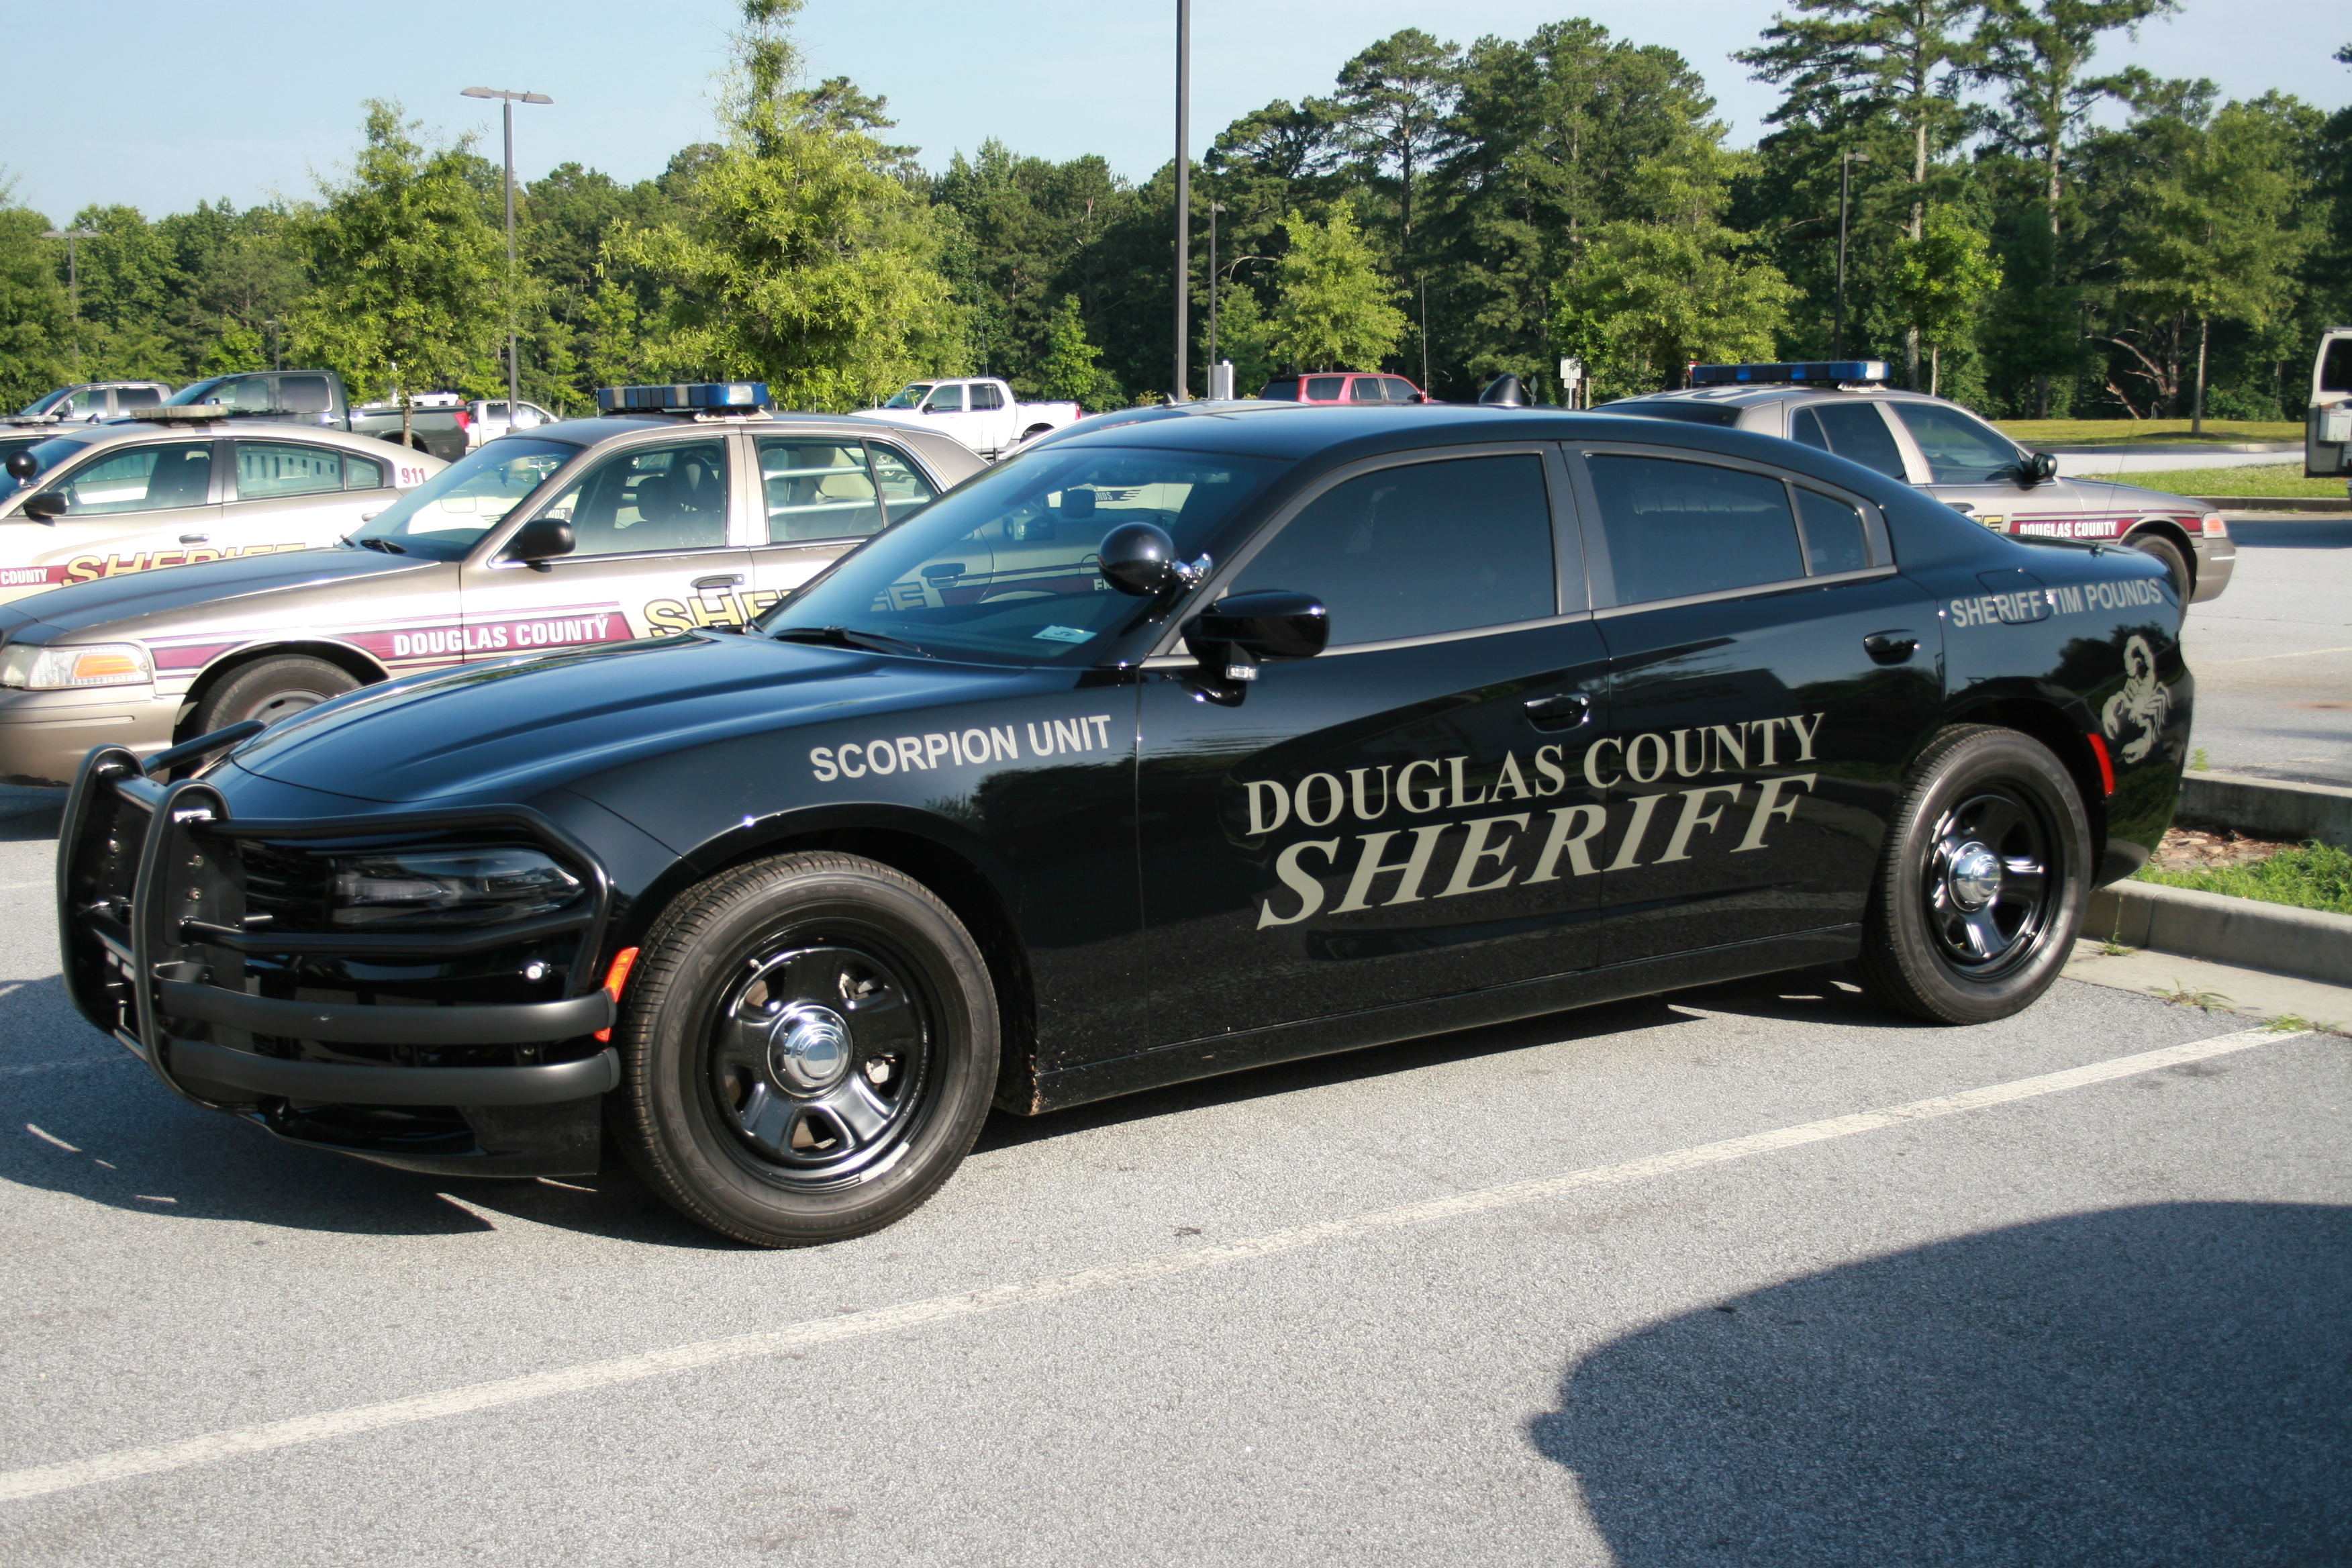 SCORPION – Douglas County Sheriff's Office (GA)